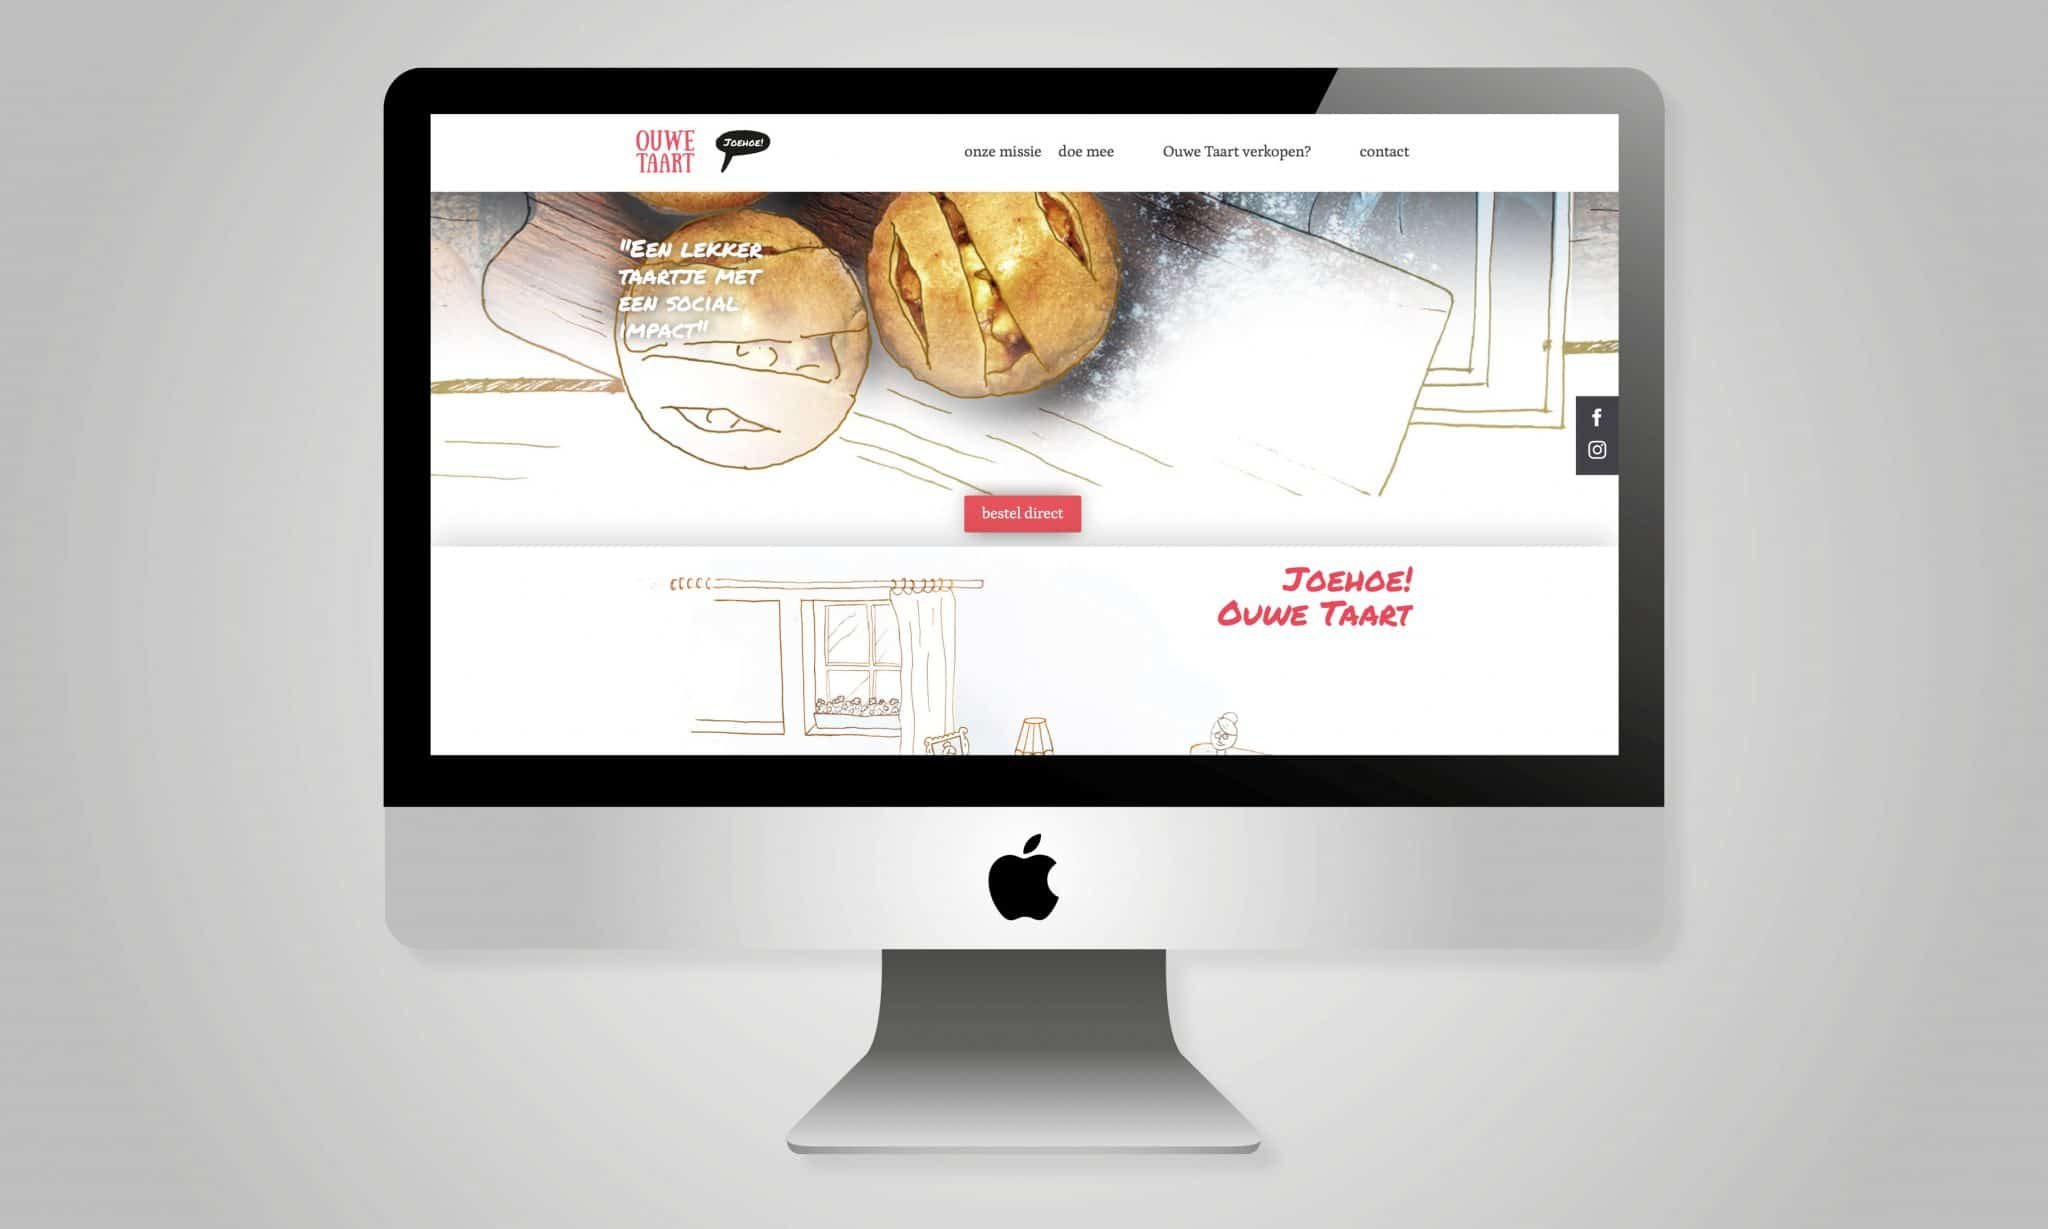 ouwe taart branding web design website